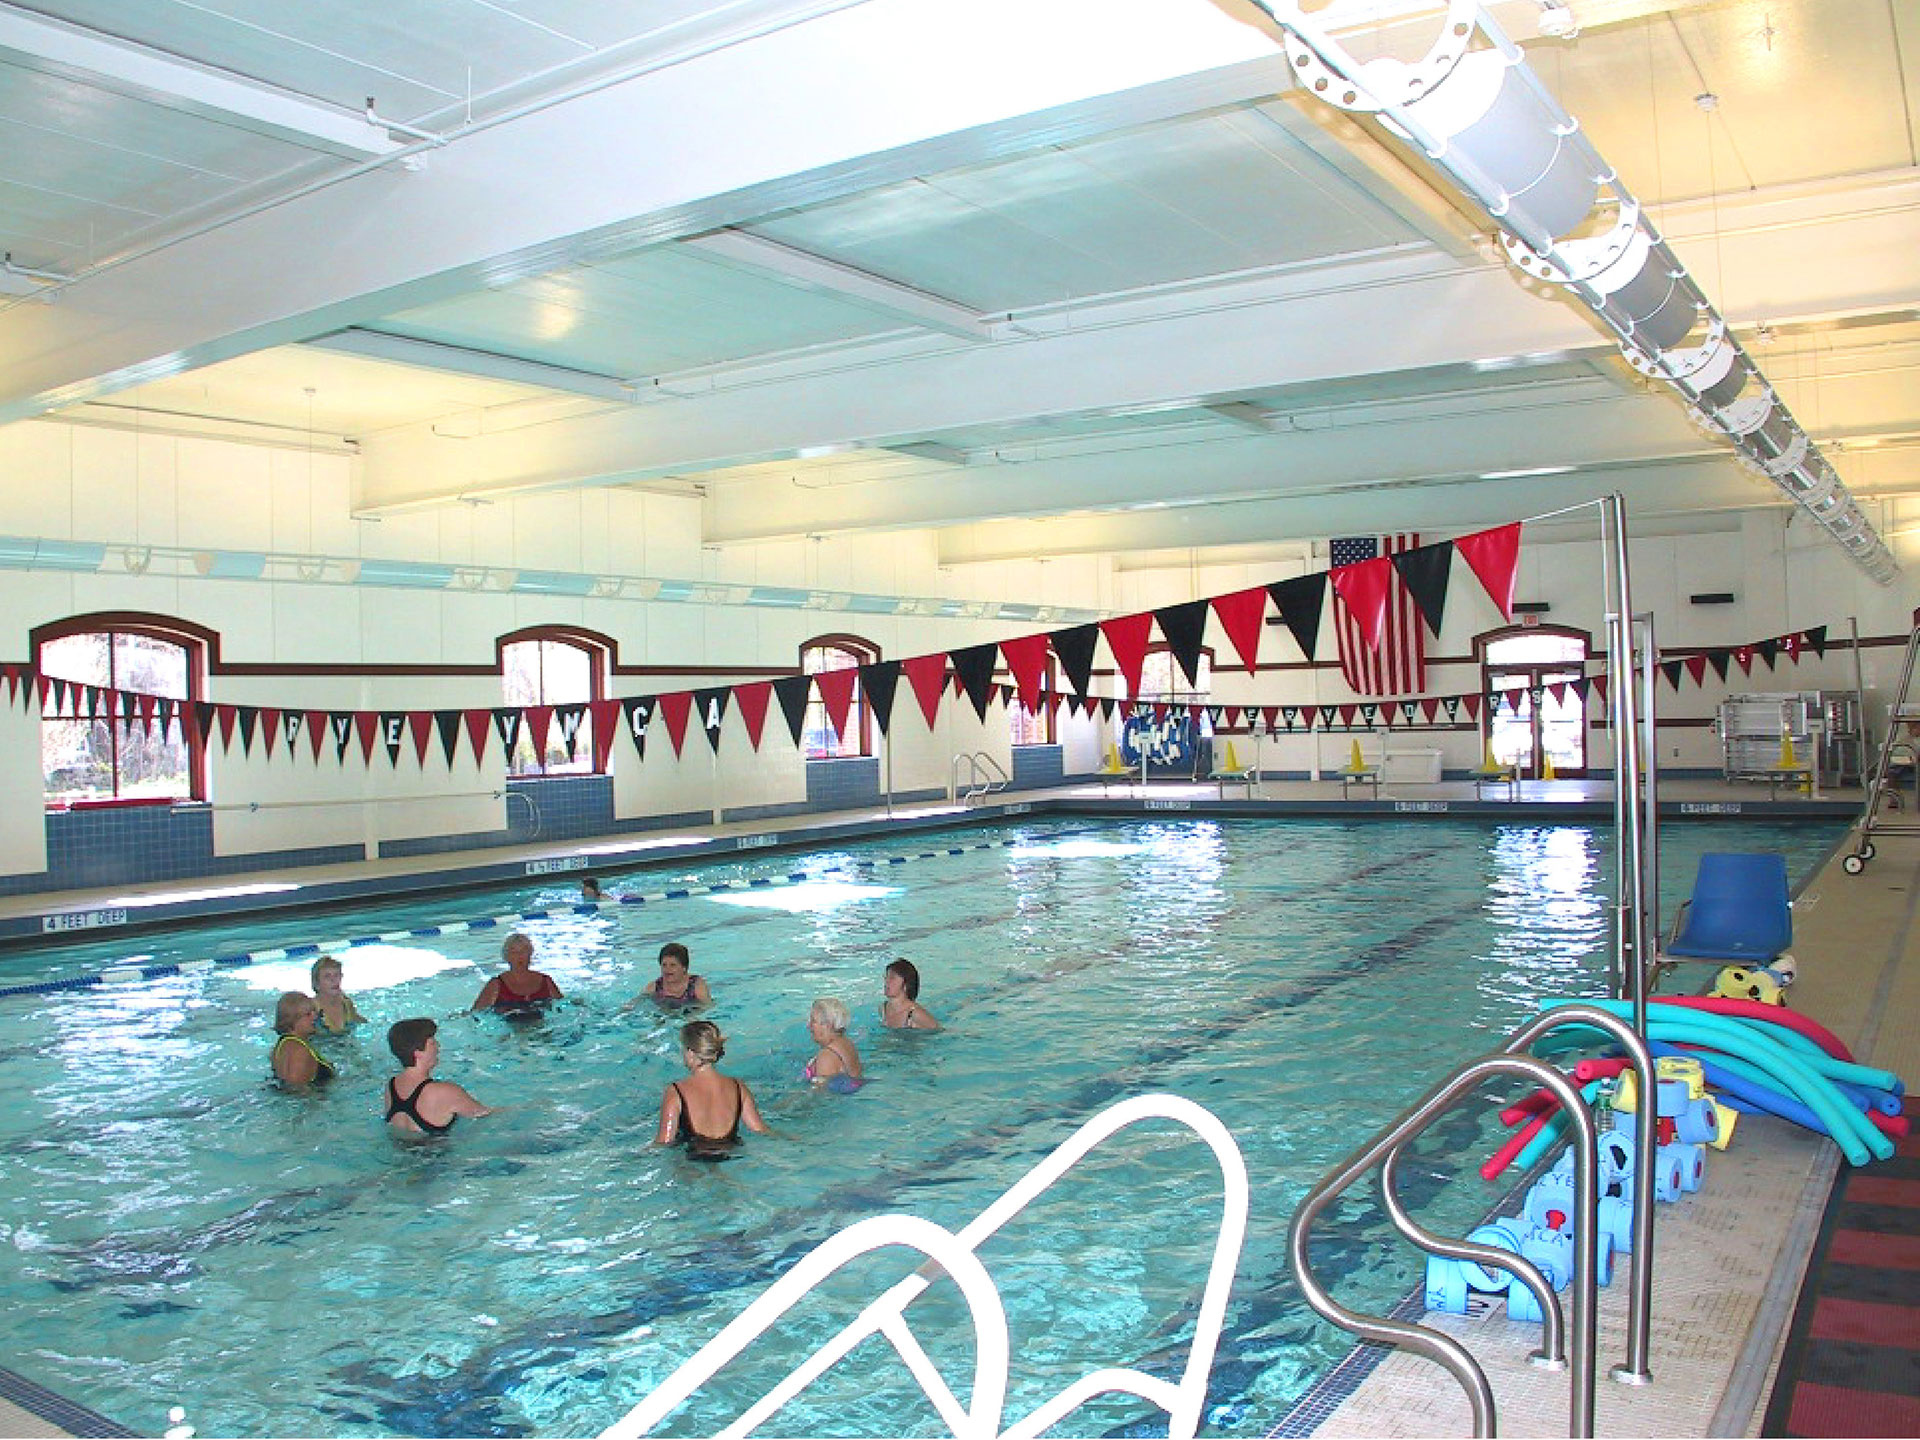 Pool at the Rye YMCA